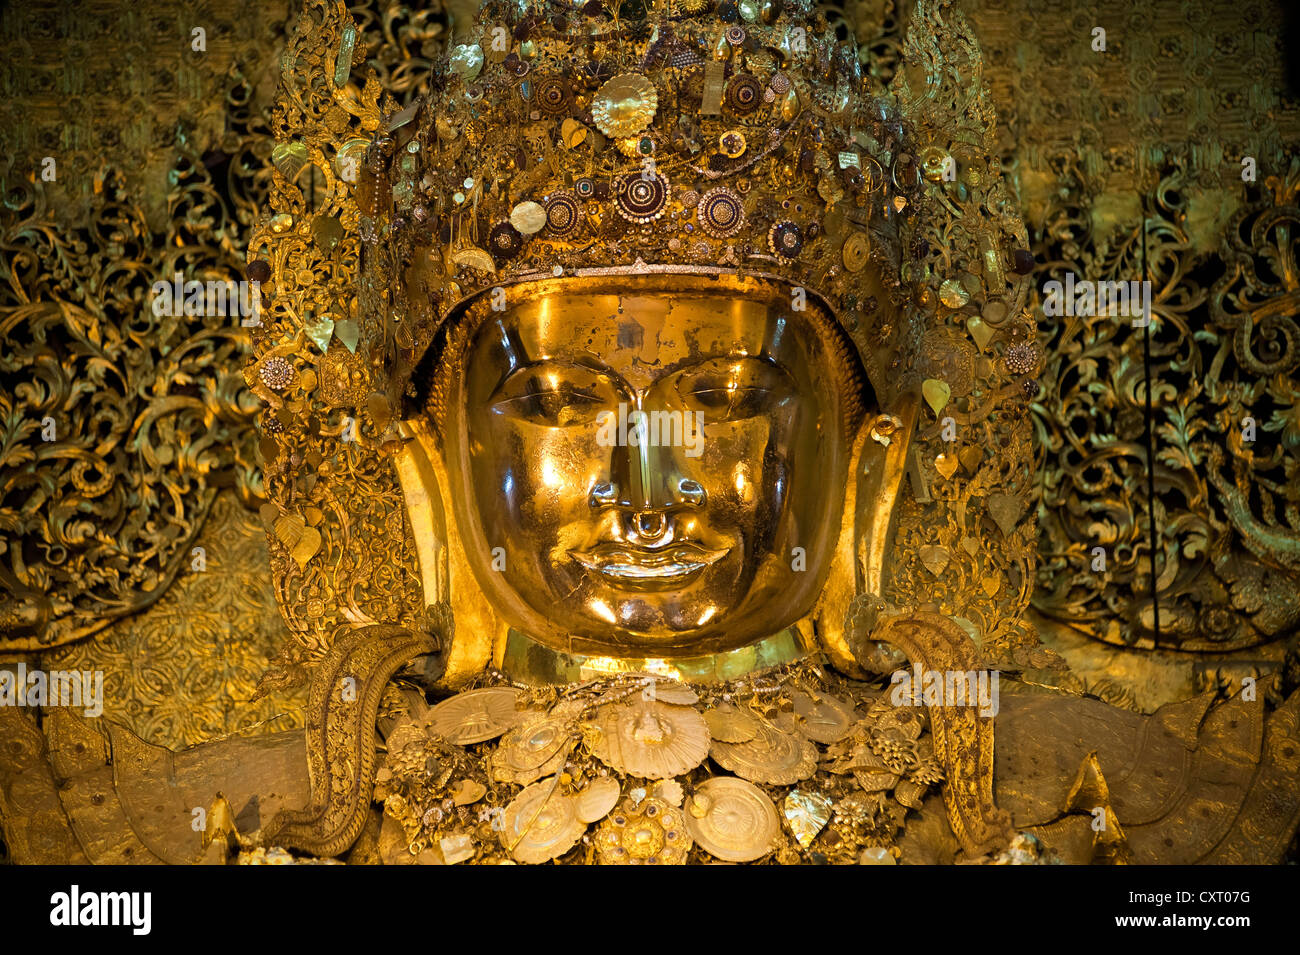 The most revered golden Mahamuni Buddha in Mandalay, Burma, Myanmar, Southeast Asia, Asia - Stock Image